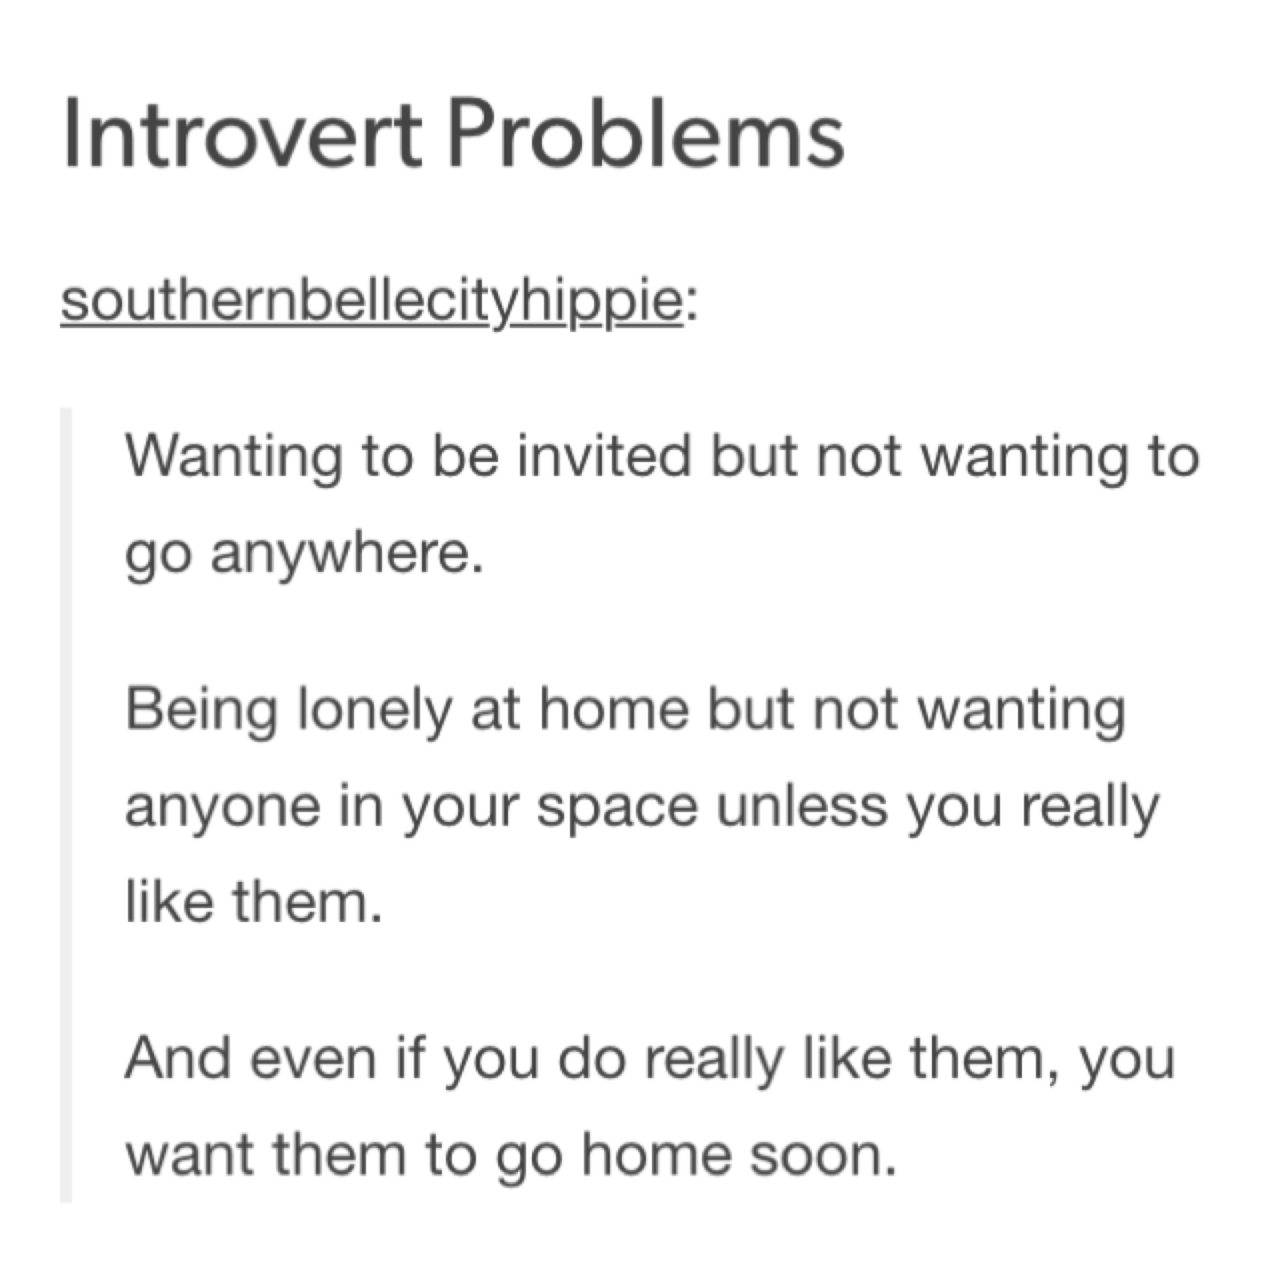 image about quotes in introvert by aphrodite on we heart it